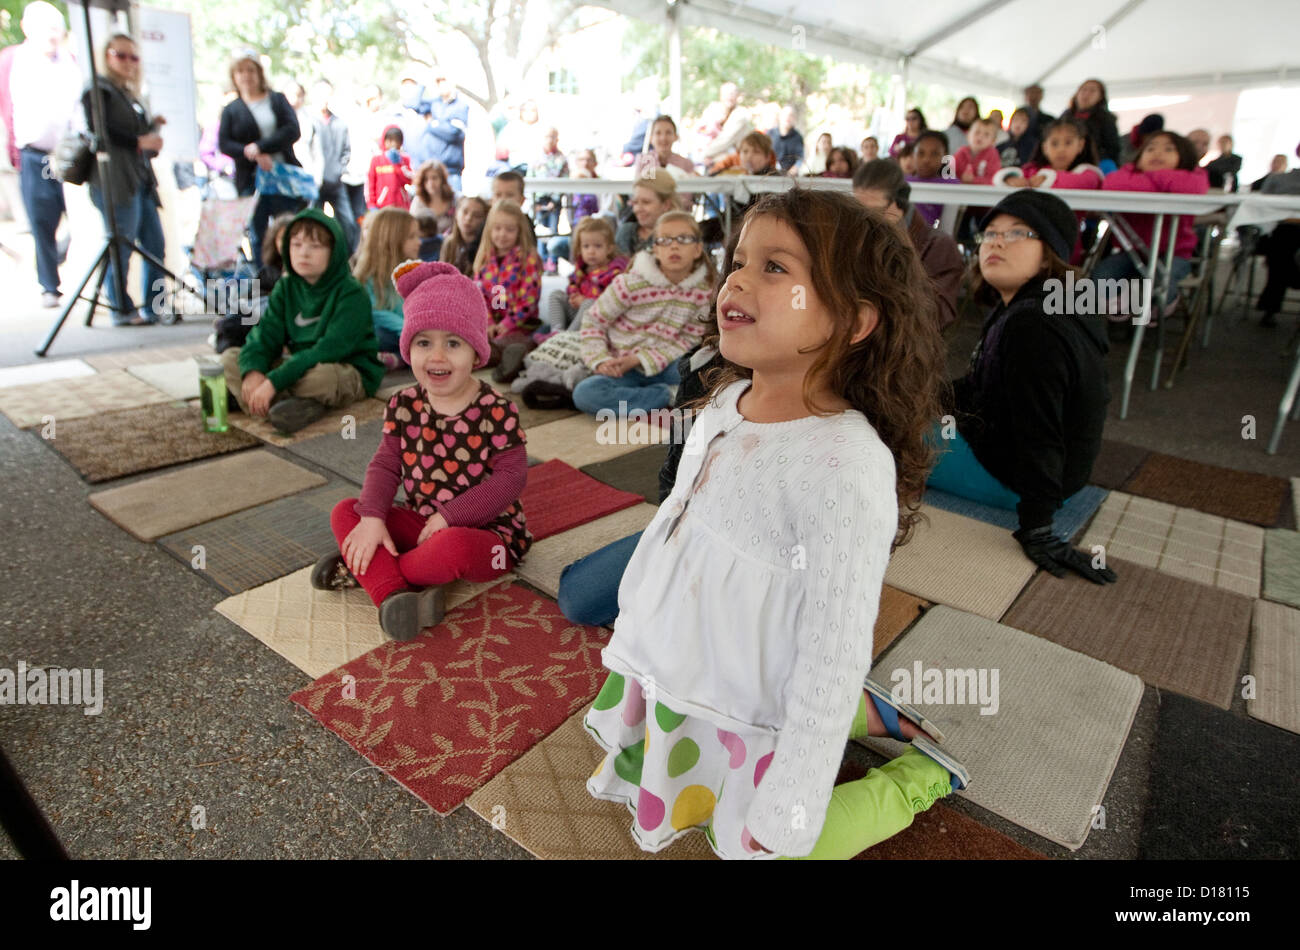 Smiling and happy children sit on carpet mats while listening to children's book author during the Texas Book - Stock Image